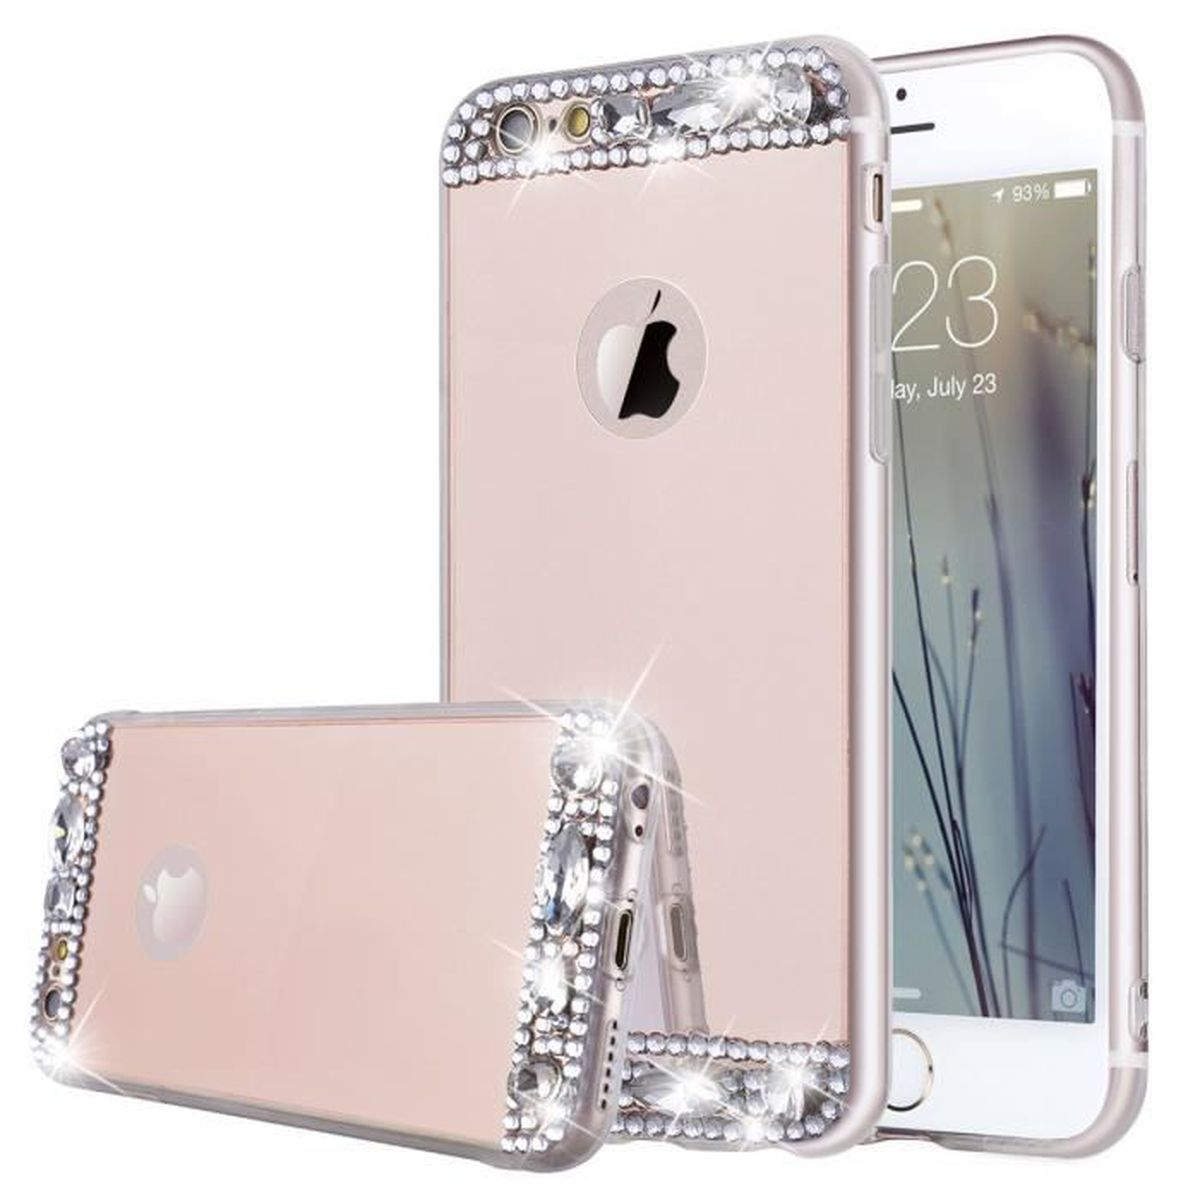 iphone 6 housse coque bling